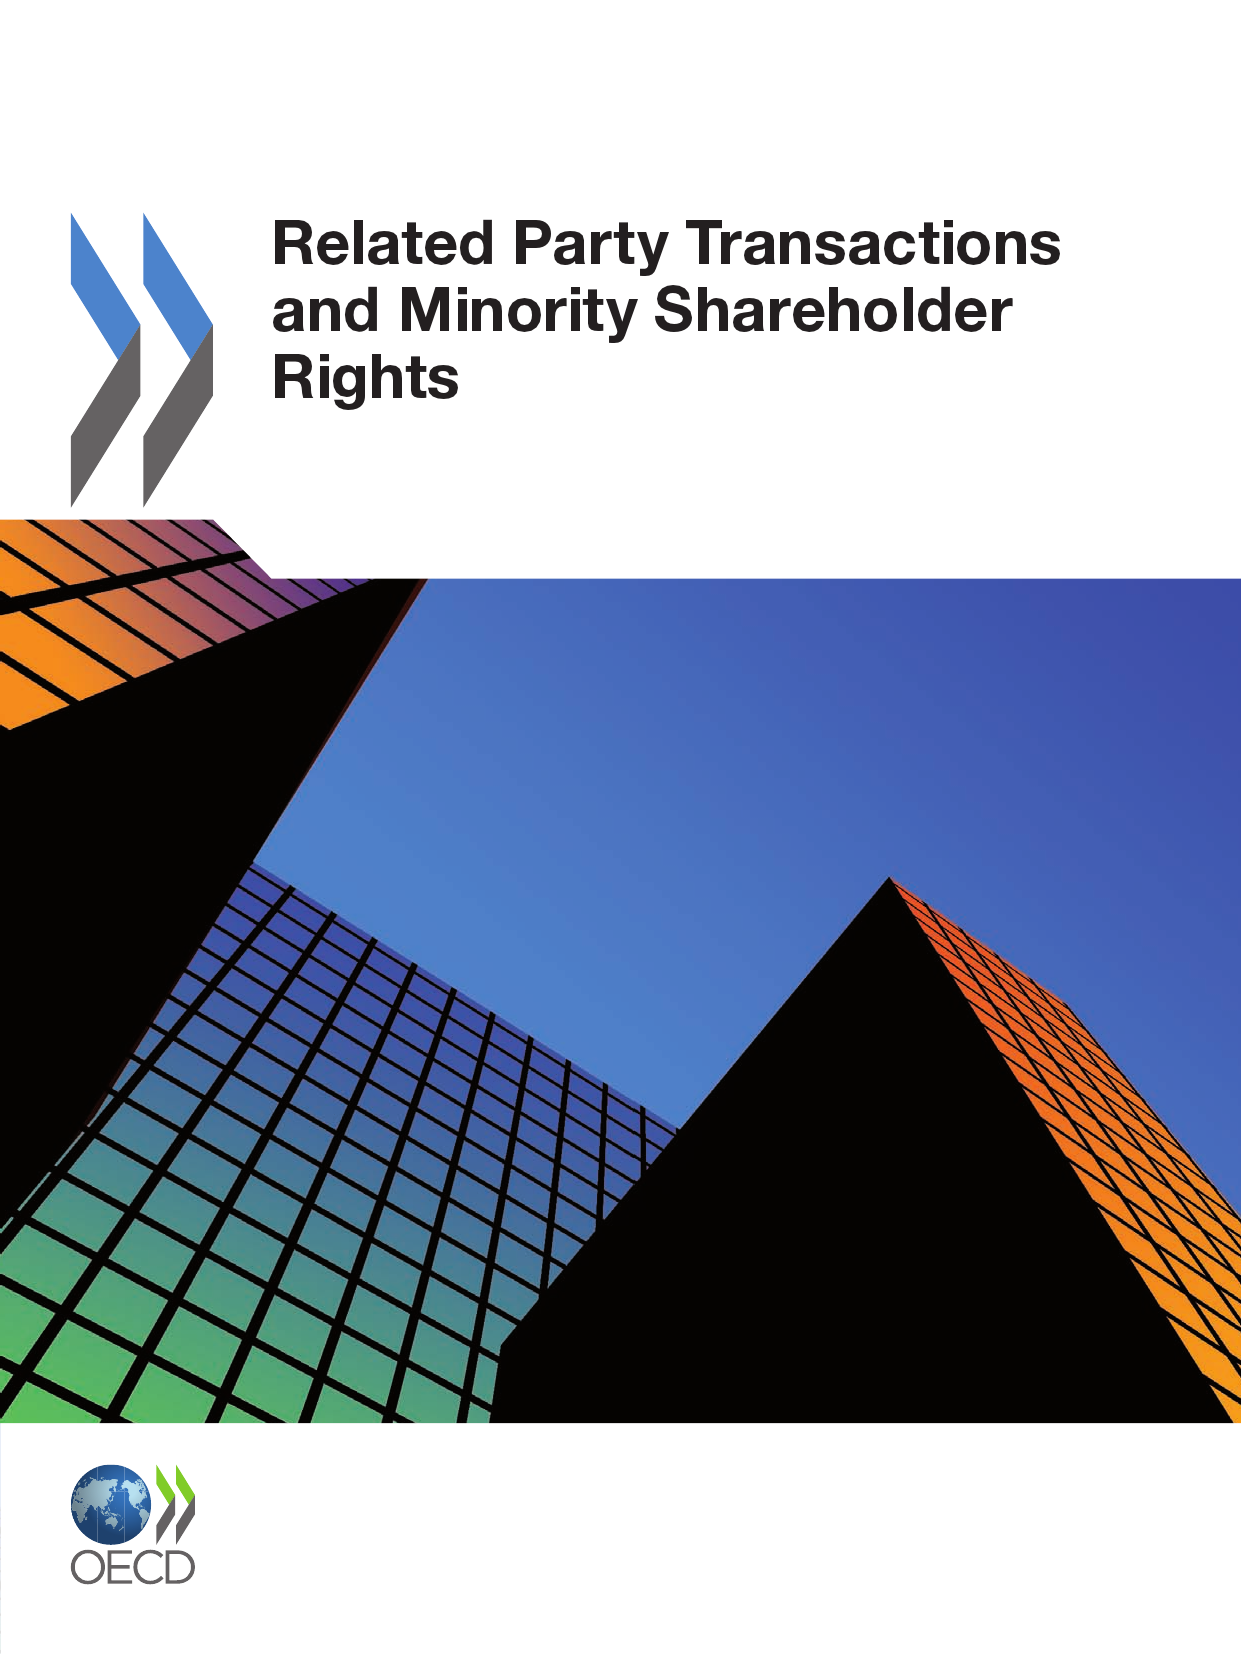 Related Party Transactions and Minority Shareholder Rights